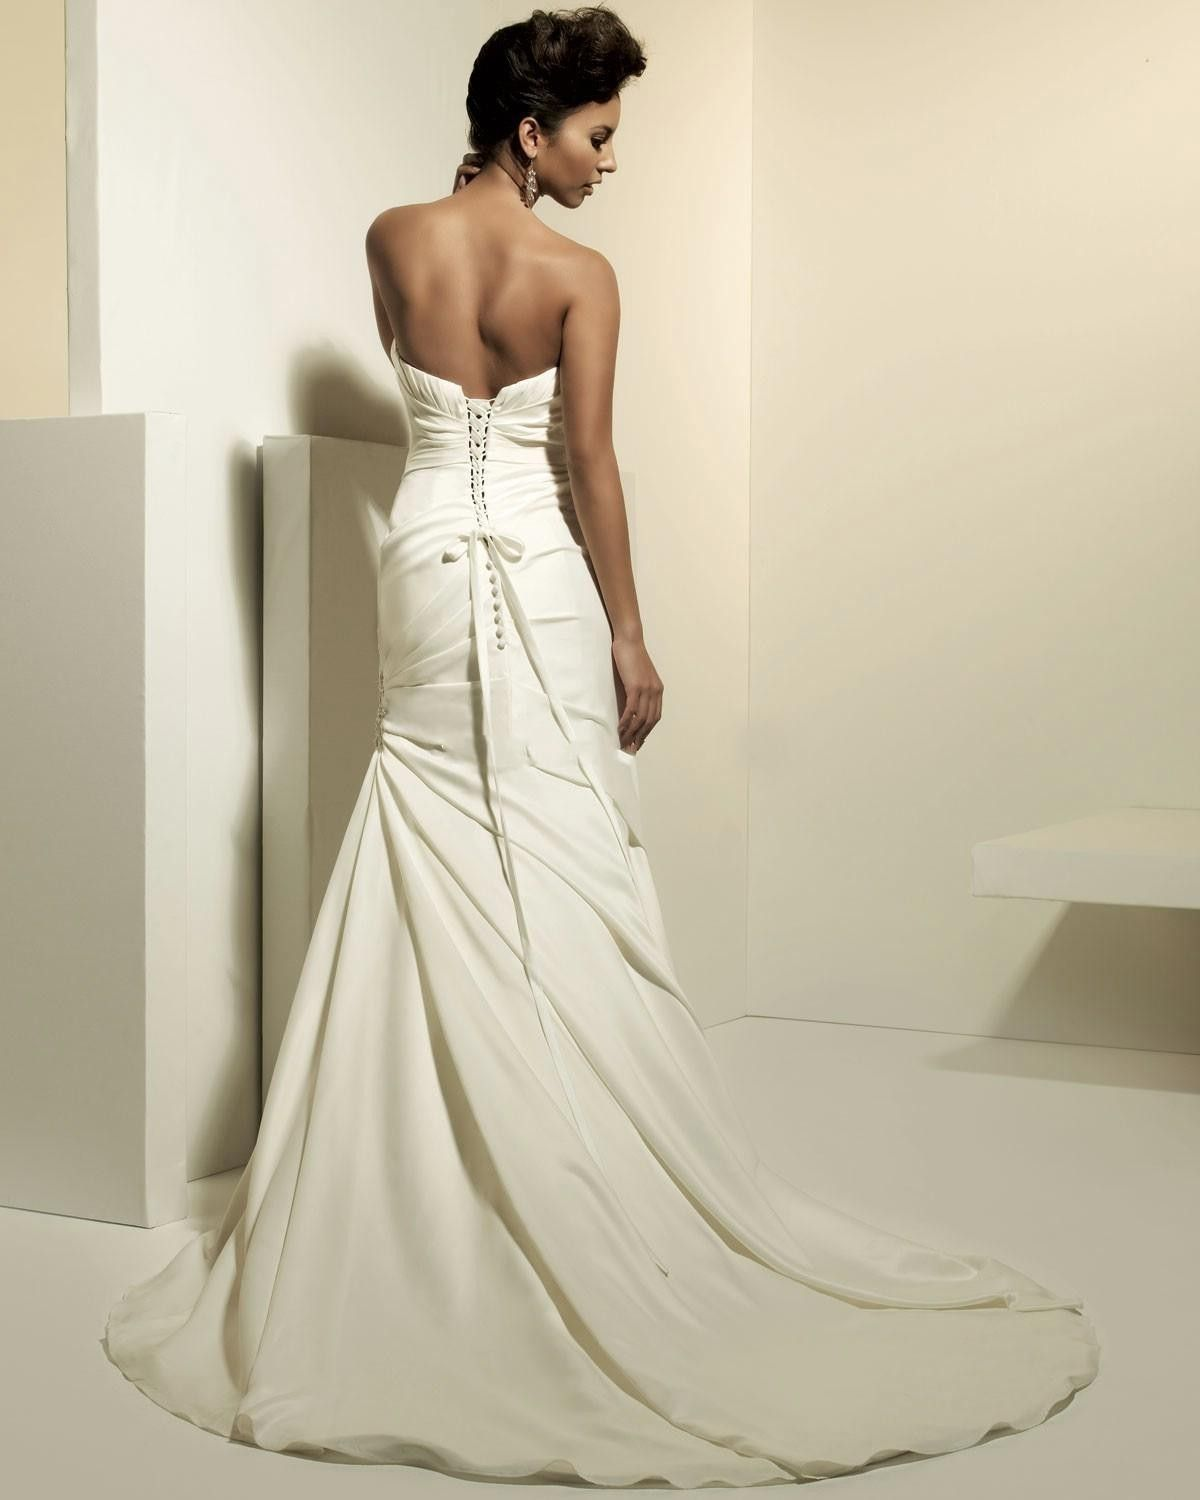 Ivory wedding dress Wedding dress Wedding cake #wedding-pinned by ...